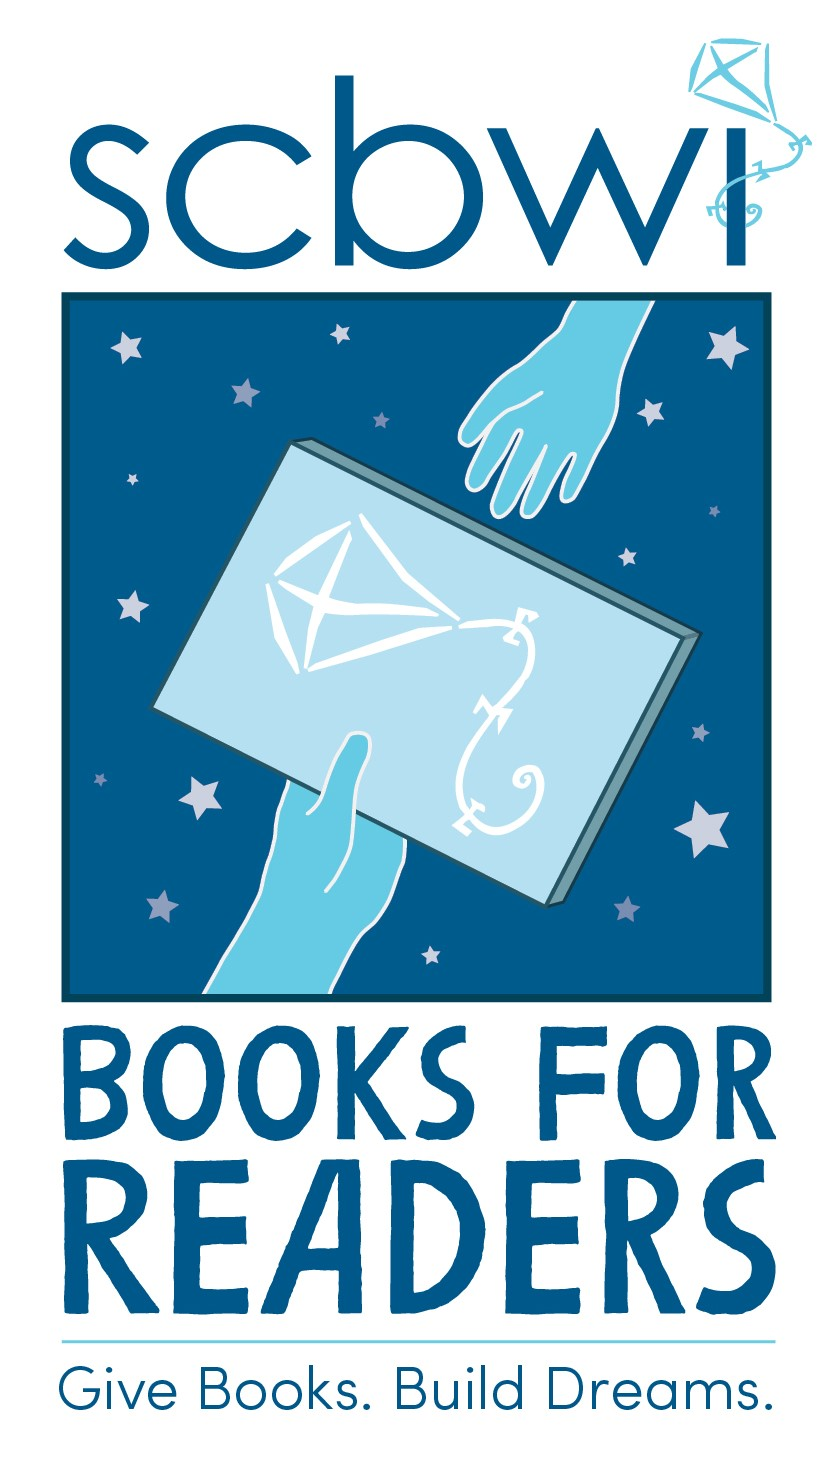 Learn more about SCBWI's Books for Readers here:http://www.scbwi.org/booksforreaders/.  Thanks to our own Patricia J. Murphy for helping to spearhead this important effort!